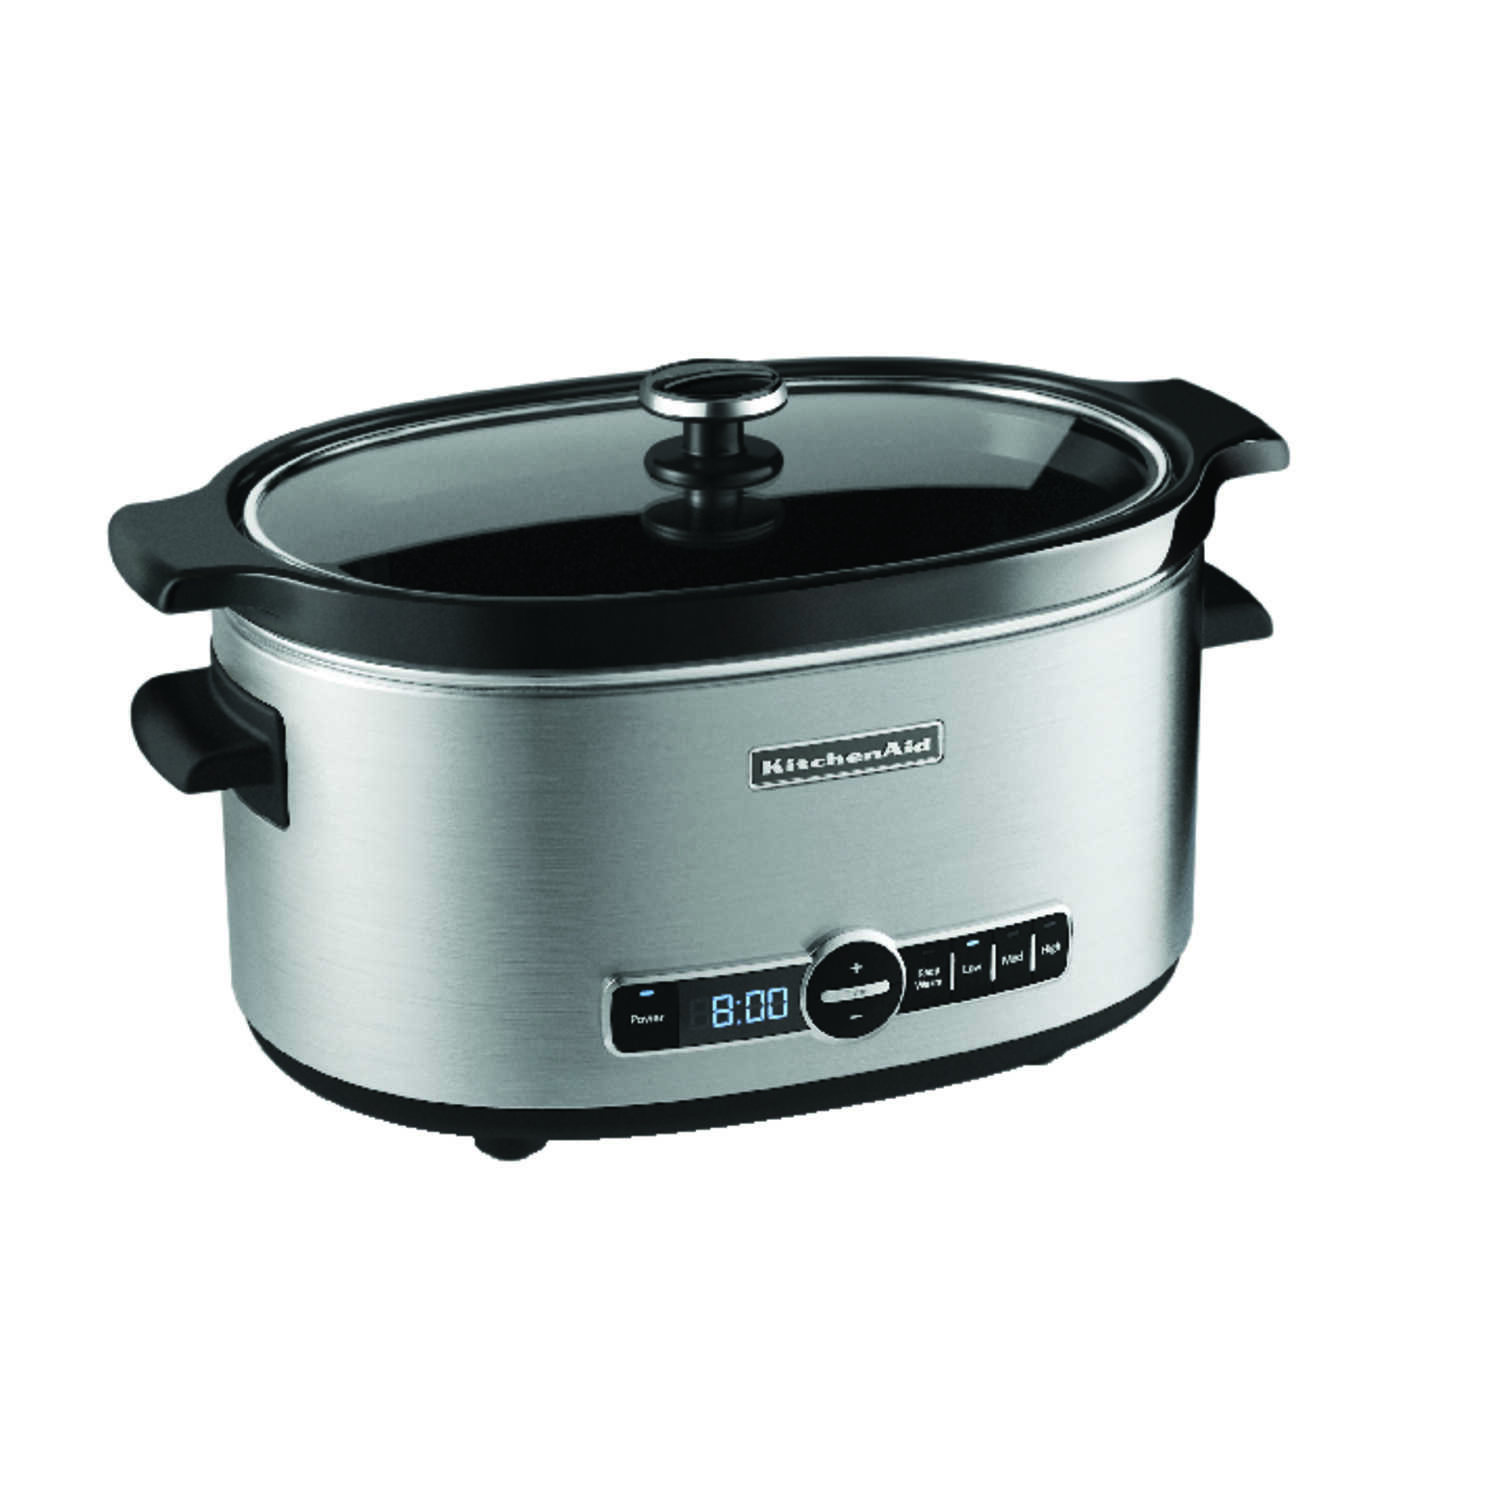 KitchenAid  6 qt. Metallic  Stainless Steel  Programmable Slow Cooker